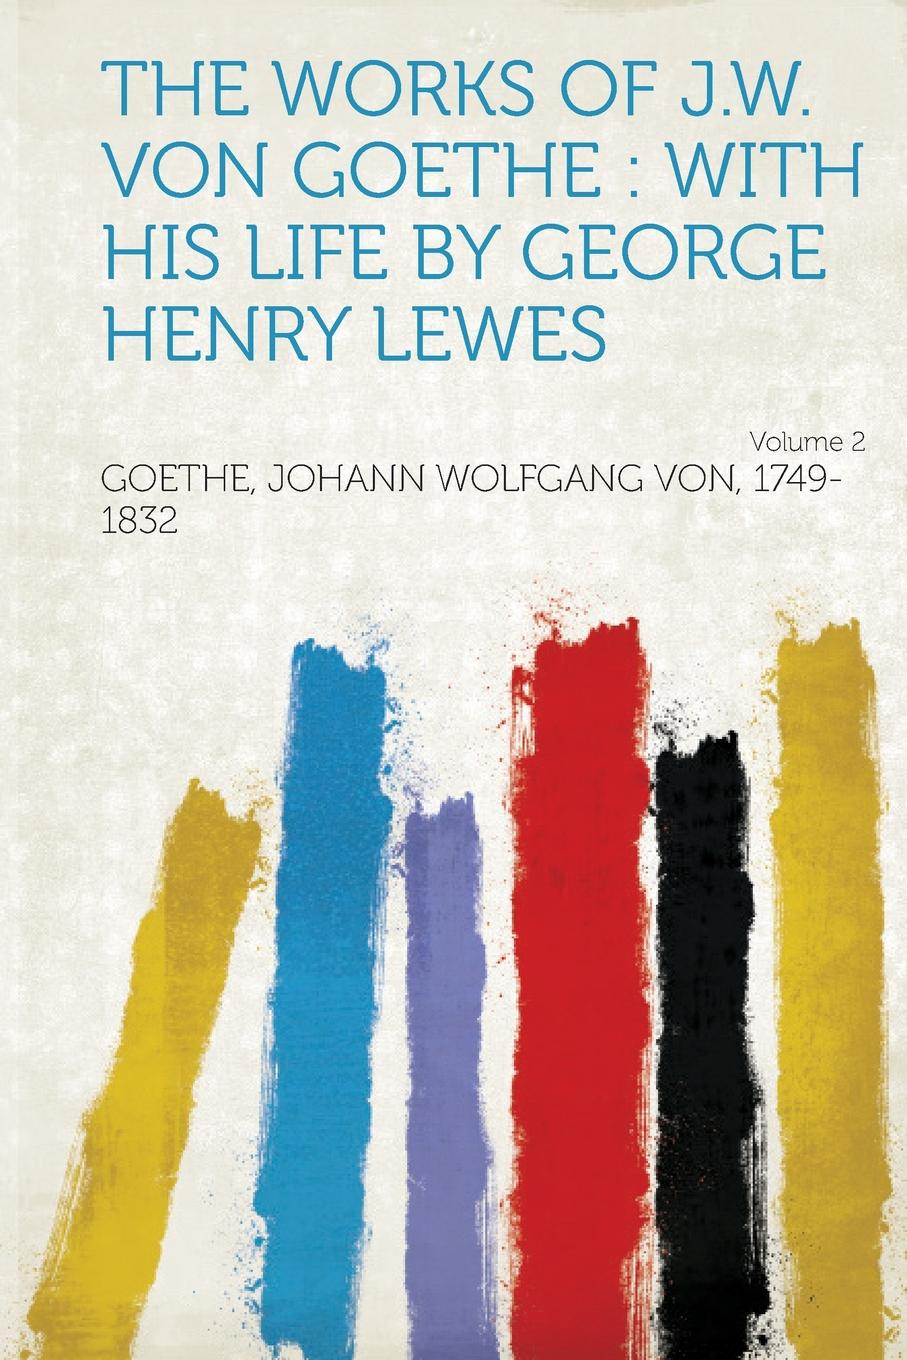 Goethe Johann Wolfgang von 1749-1832 The Works of J.W. Von Goethe. With His Life by George Henry Lewes Volume 2 george henry lewes the life of goethe